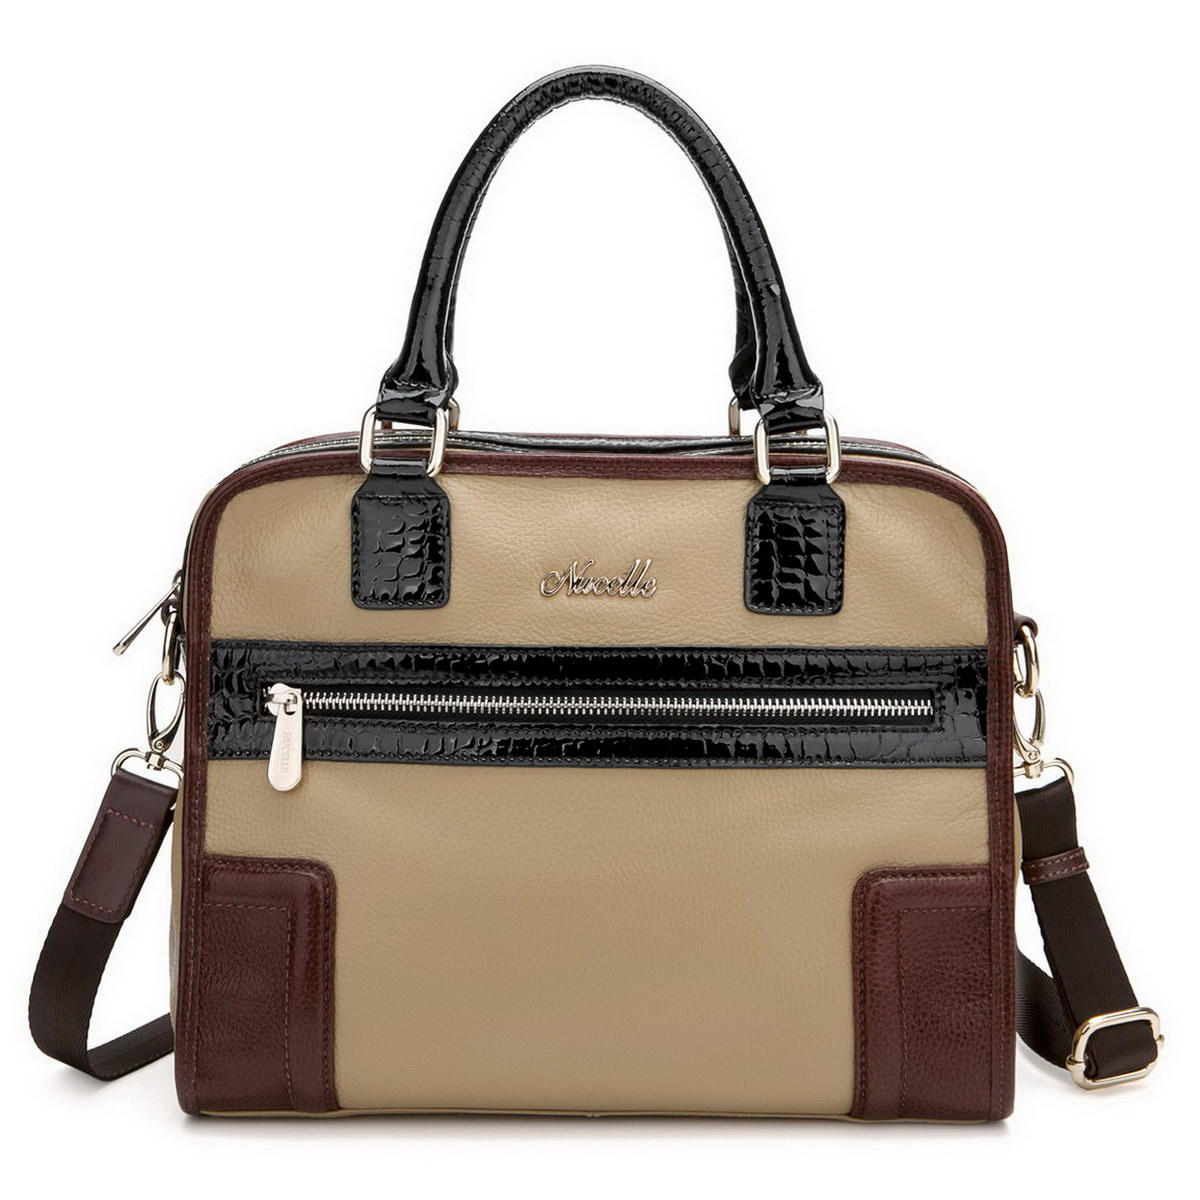 humorrmundiall.ga: Cheap Leather Bags. From The Community. Amazon Try Prime All Womens Hobo Bag Durable Leather Tote Messenger Bag Shoulder Handbag Crossbody Bags for Ladies. by BragBag. $ $ 33 99 Prime. FREE Shipping on eligible orders. .